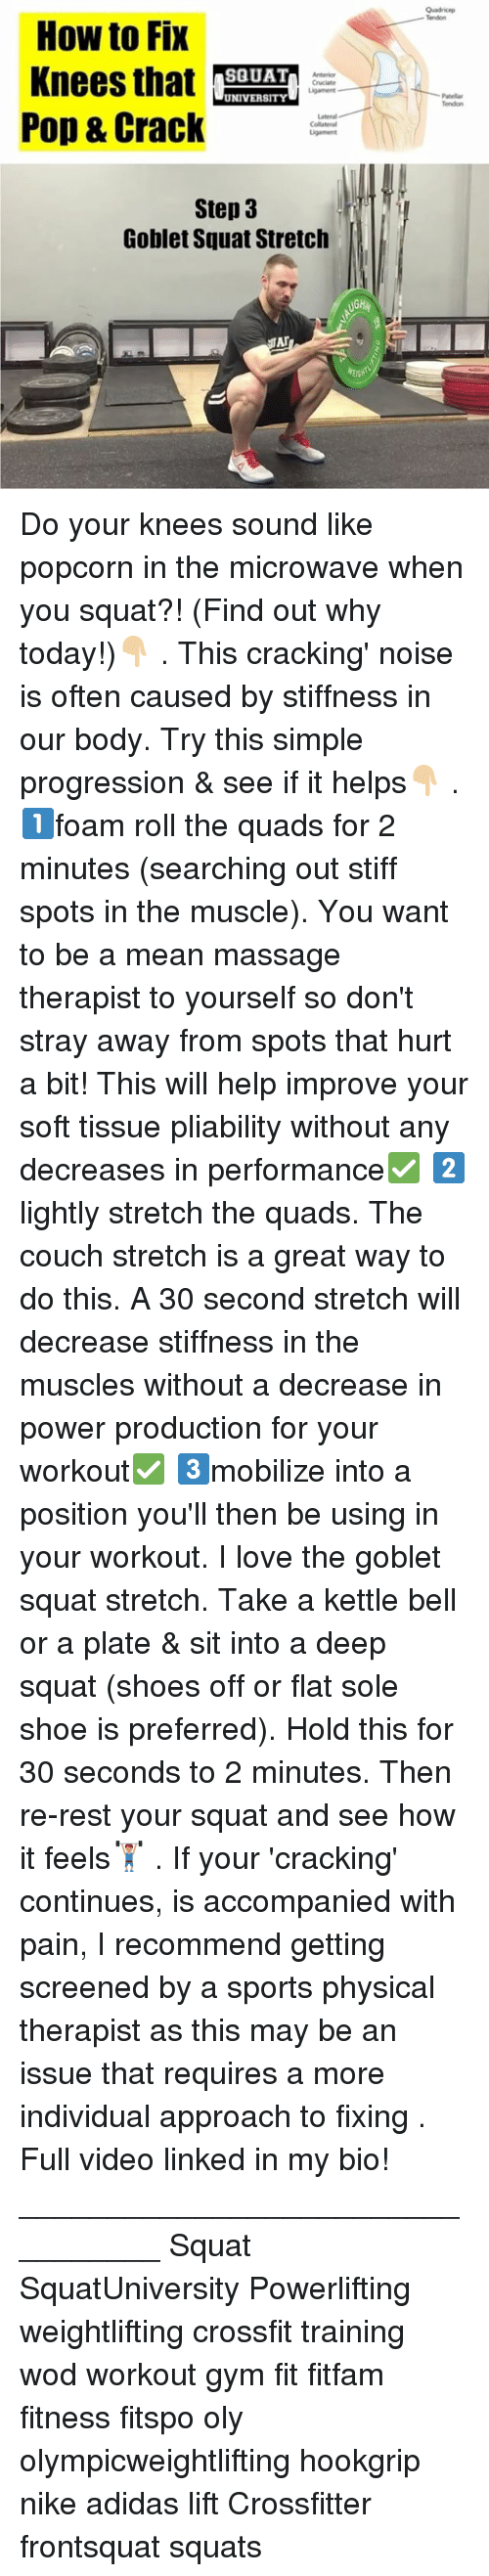 Oftenly: Quadricep  - Tendon  How to Fix  Knees that ETAT  Pop & Crack  SQUAT  Cruciate  UNIVERSITY  Patellar  Tendon  Lateral  Collateral  Step 3  Goblet Squat Stretclh  GH Do your knees sound like popcorn in the microwave when you squat?! (Find out why today!)👇🏼 . This cracking' noise is often caused by stiffness in our body. Try this simple progression & see if it helps👇🏼 . 1️⃣foam roll the quads for 2 minutes (searching out stiff spots in the muscle). You want to be a mean massage therapist to yourself so don't stray away from spots that hurt a bit! This will help improve your soft tissue pliability without any decreases in performance✅ 2️⃣lightly stretch the quads. The couch stretch is a great way to do this. A 30 second stretch will decrease stiffness in the muscles without a decrease in power production for your workout✅ 3️⃣mobilize into a position you'll then be using in your workout. I love the goblet squat stretch. Take a kettle bell or a plate & sit into a deep squat (shoes off or flat sole shoe is preferred). Hold this for 30 seconds to 2 minutes. Then re-rest your squat and see how it feels🏋🏽 . If your 'cracking' continues, is accompanied with pain, I recommend getting screened by a sports physical therapist as this may be an issue that requires a more individual approach to fixing . Full video linked in my bio! _________________________________ Squat SquatUniversity Powerlifting weightlifting crossfit training wod workout gym fit fitfam fitness fitspo oly olympicweightlifting hookgrip nike adidas lift Crossfitter frontsquat squats